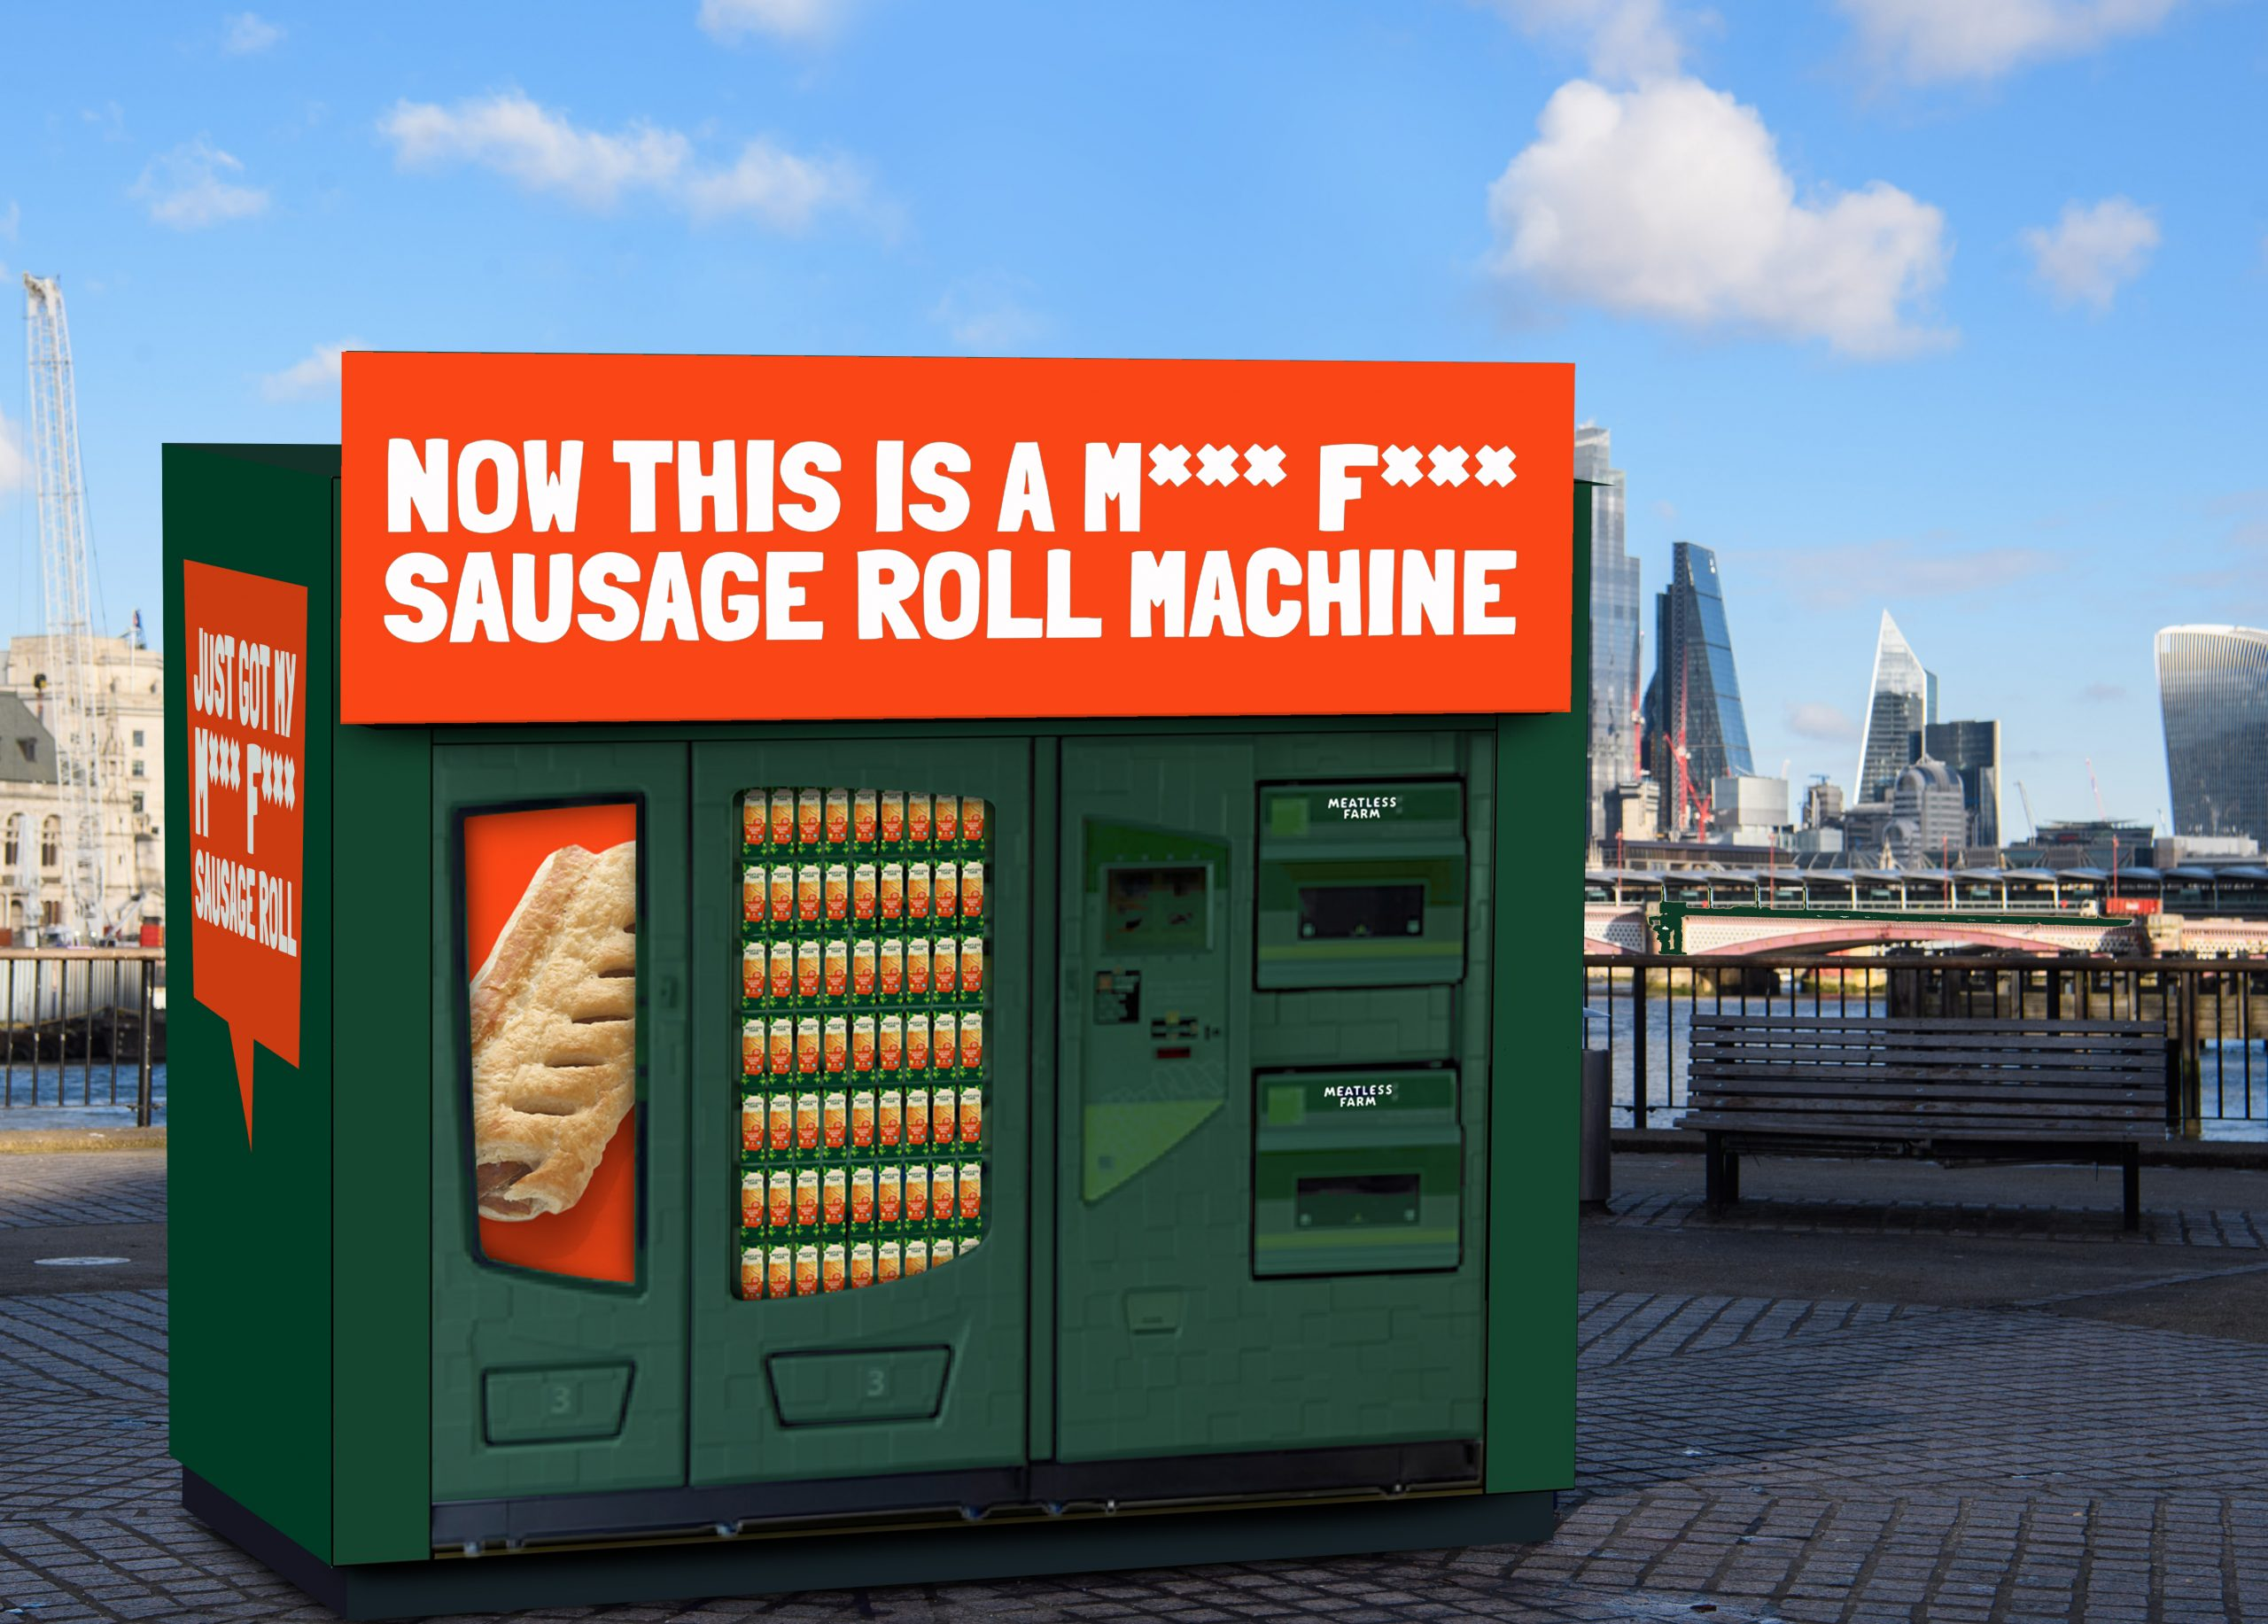 National Sausage Roll Day is Saturday 5th June – and it's going meat free